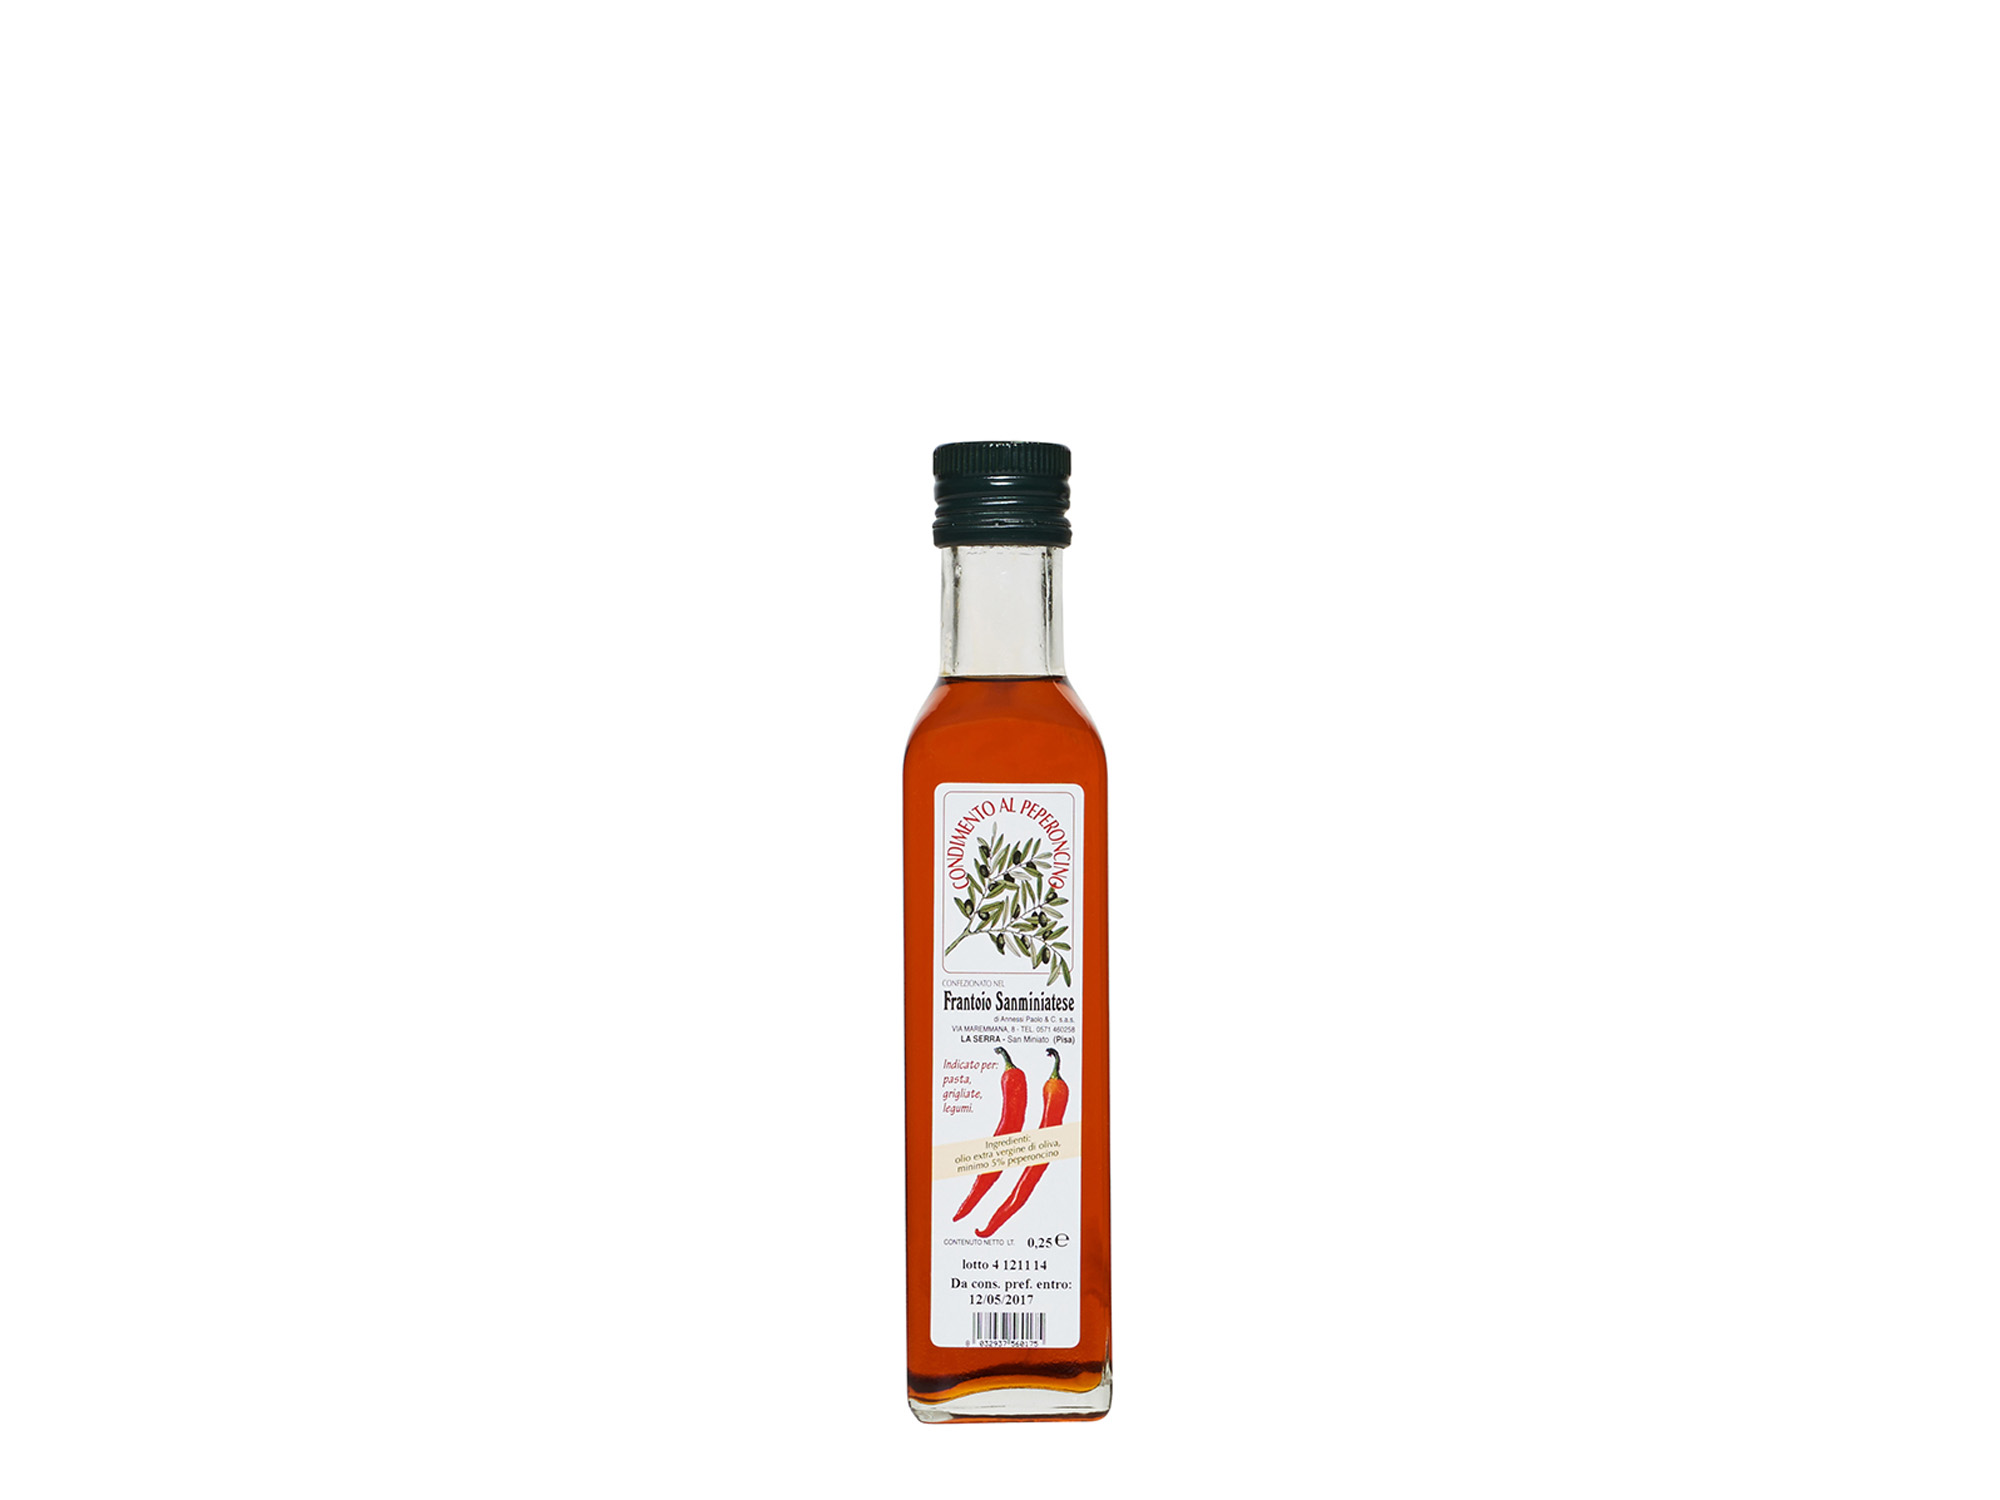 Olio al Chili 250ml & 100ml